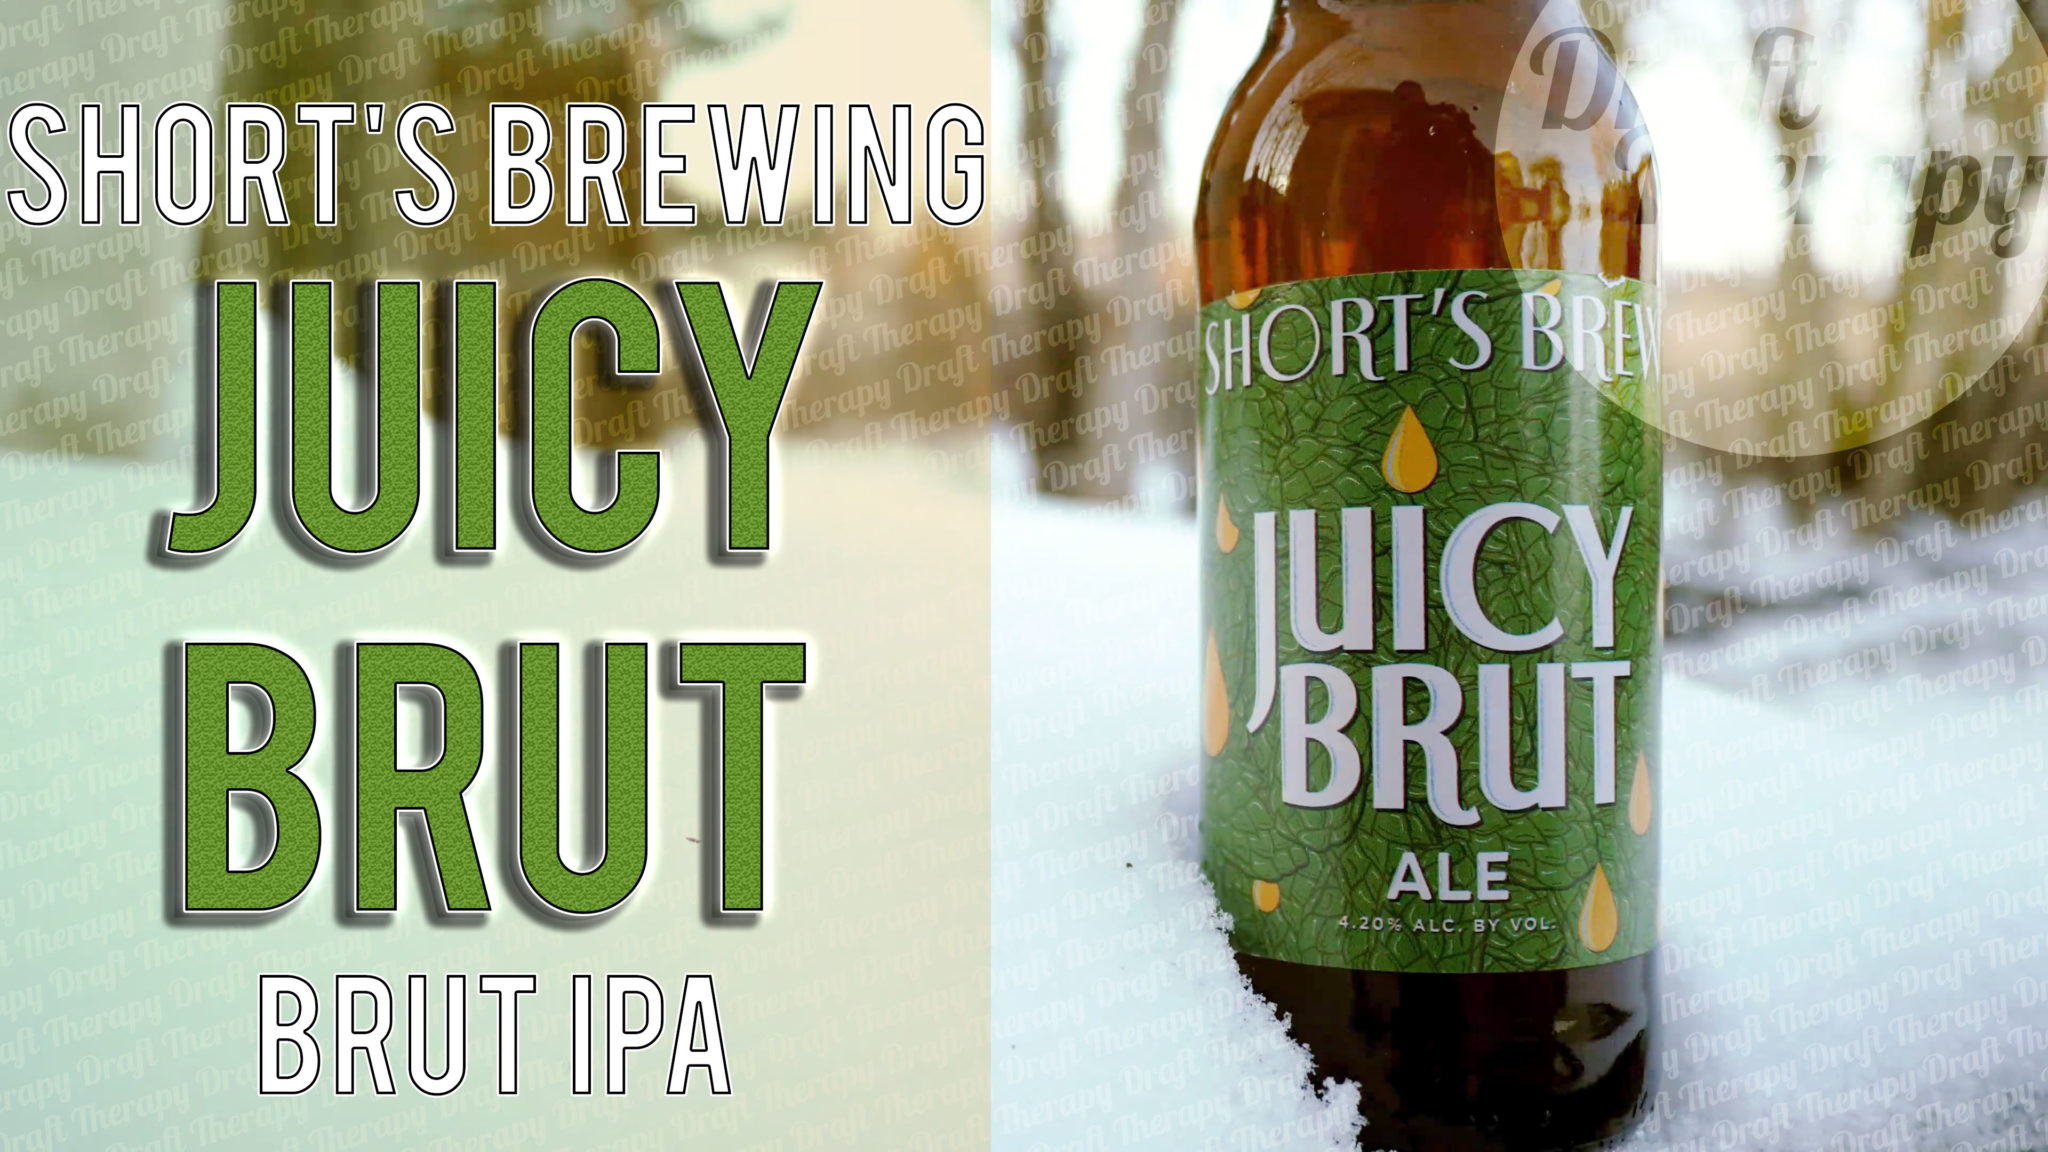 Short's Brewing – Juicy Brut IPA